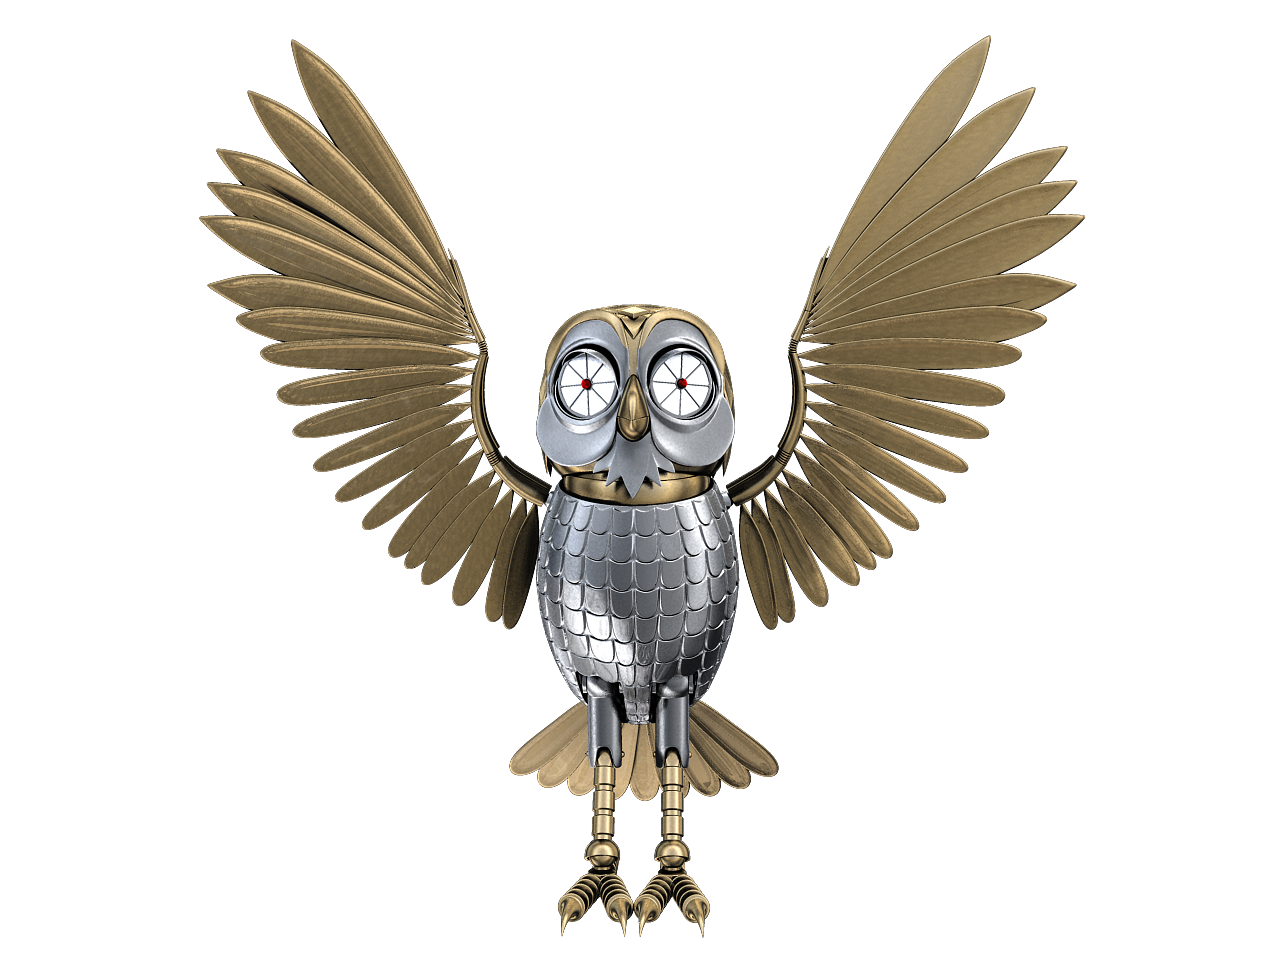 Owl statue mm png. Tg traditional games